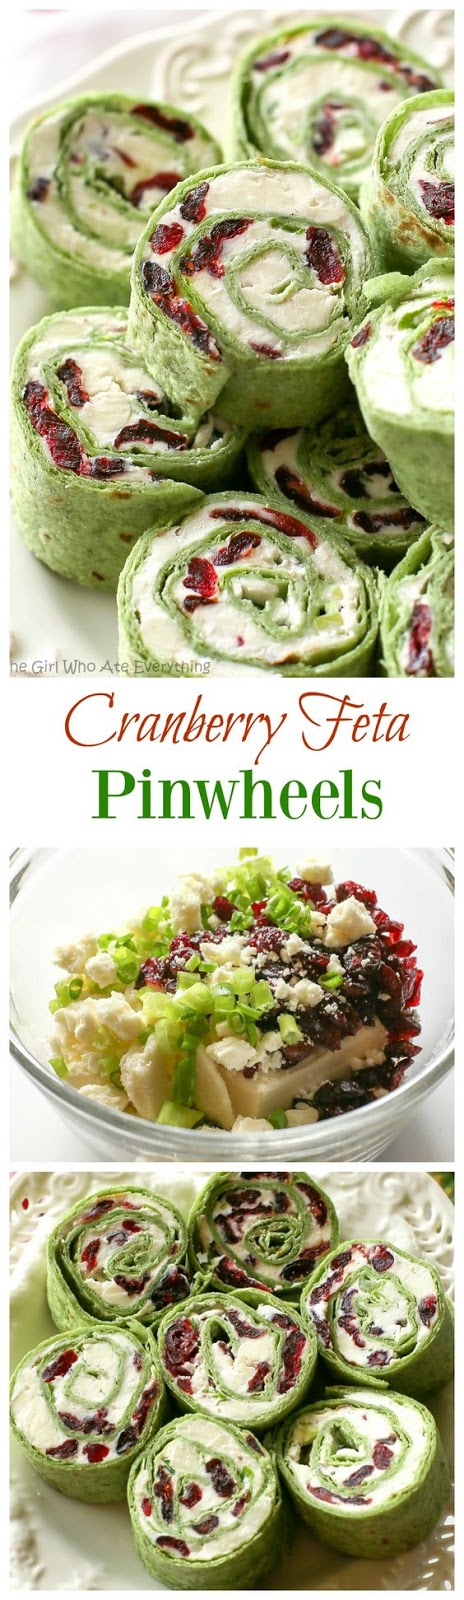 ★★★★☆ 7561 ratings | CRANBERRY AND FETA PINWHEELS  #HEALTHYFOOD #EASYRECIPES #DINNER #LAUCH #DELICIOUS #EASY #HOLIDAYS #RECIPE #DESSERTS #SPECIALDIET #WORLDCUISINE #CAKE #APPETIZERS #HEALTHYRECIPES #DRINKS #COOKINGMETHOD #ITALIANRECIPES #MEAT #VEGANRECIPES #COOKIES #PASTA #FRUIT #SALAD #SOUPAPPETIZERS #NONALCOHOLICDRINKS #MEALPLANNING #VEGETABLES #SOUP #PASTRY #CHOCOLATE #DAIRY #ALCOHOLICDRINKS #BULGURSALAD #BAKING #SNACKS #BEEFRECIPES #MEATAPPETIZERS #MEXICANRECIPES #BREAD #ASIANRECIPES #SEAFOODAPPETIZERS #MUFFINS #BREAKFASTANDBRUNCH #CONDIMENTS #CUPCAKES #CHEESE #CHICKENRECIPES #PIE #COFFEE #NOBAKEDESSERTS #HEALTHYSNACKS #SEAFOOD #GRAIN #LUNCHESDINNERS #MEXICAN #QUICKBREAD #LIQUOR